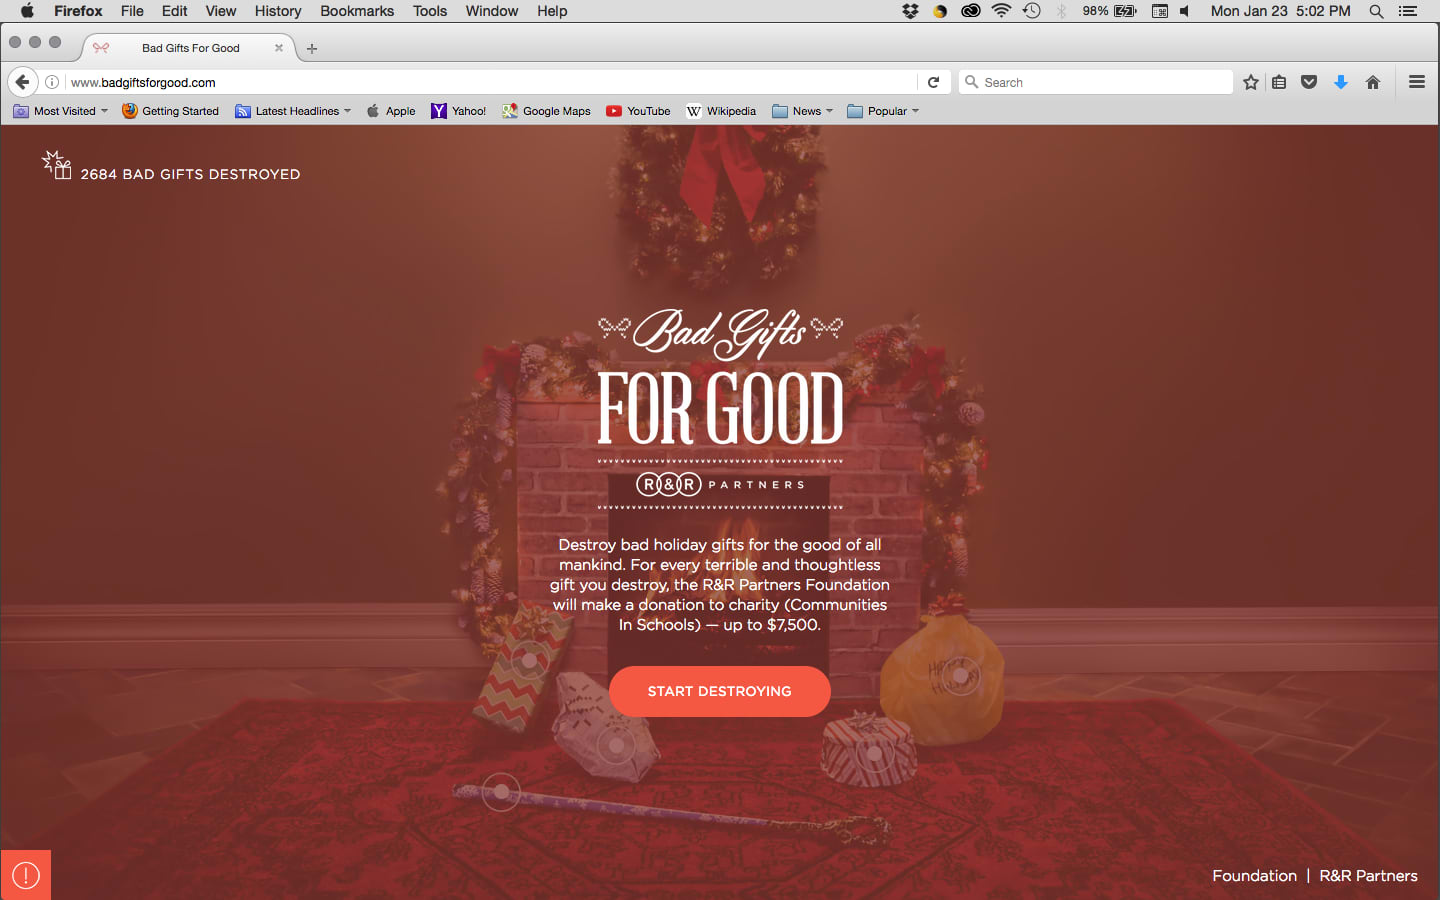 Cause Marketing––Bad Gifts For Good